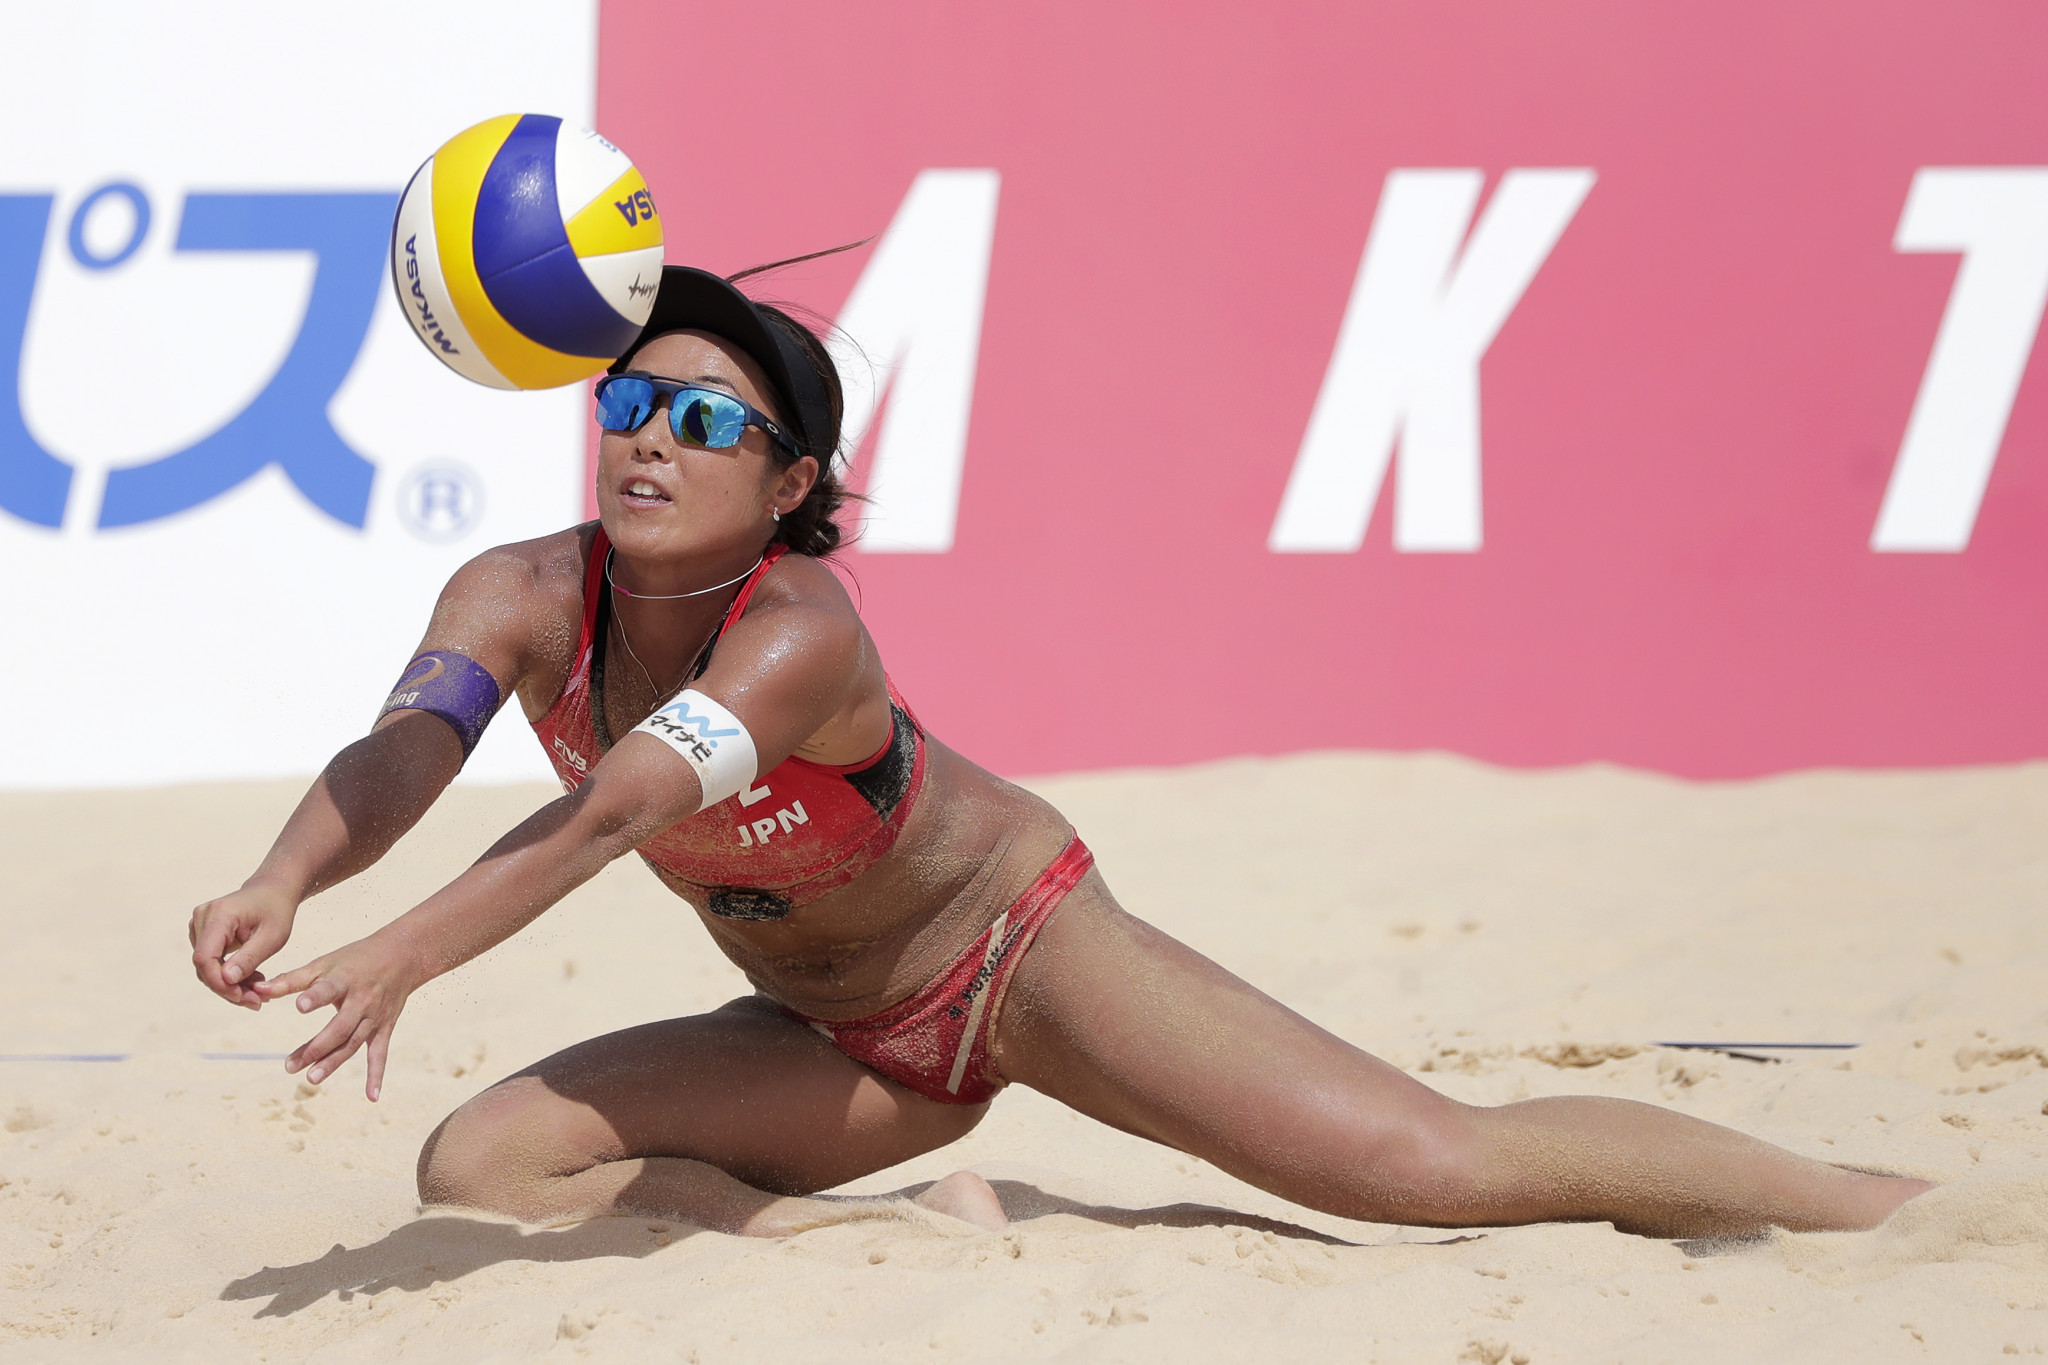 Japanese pairing to open Tokyo 2020 beach volleyball competition